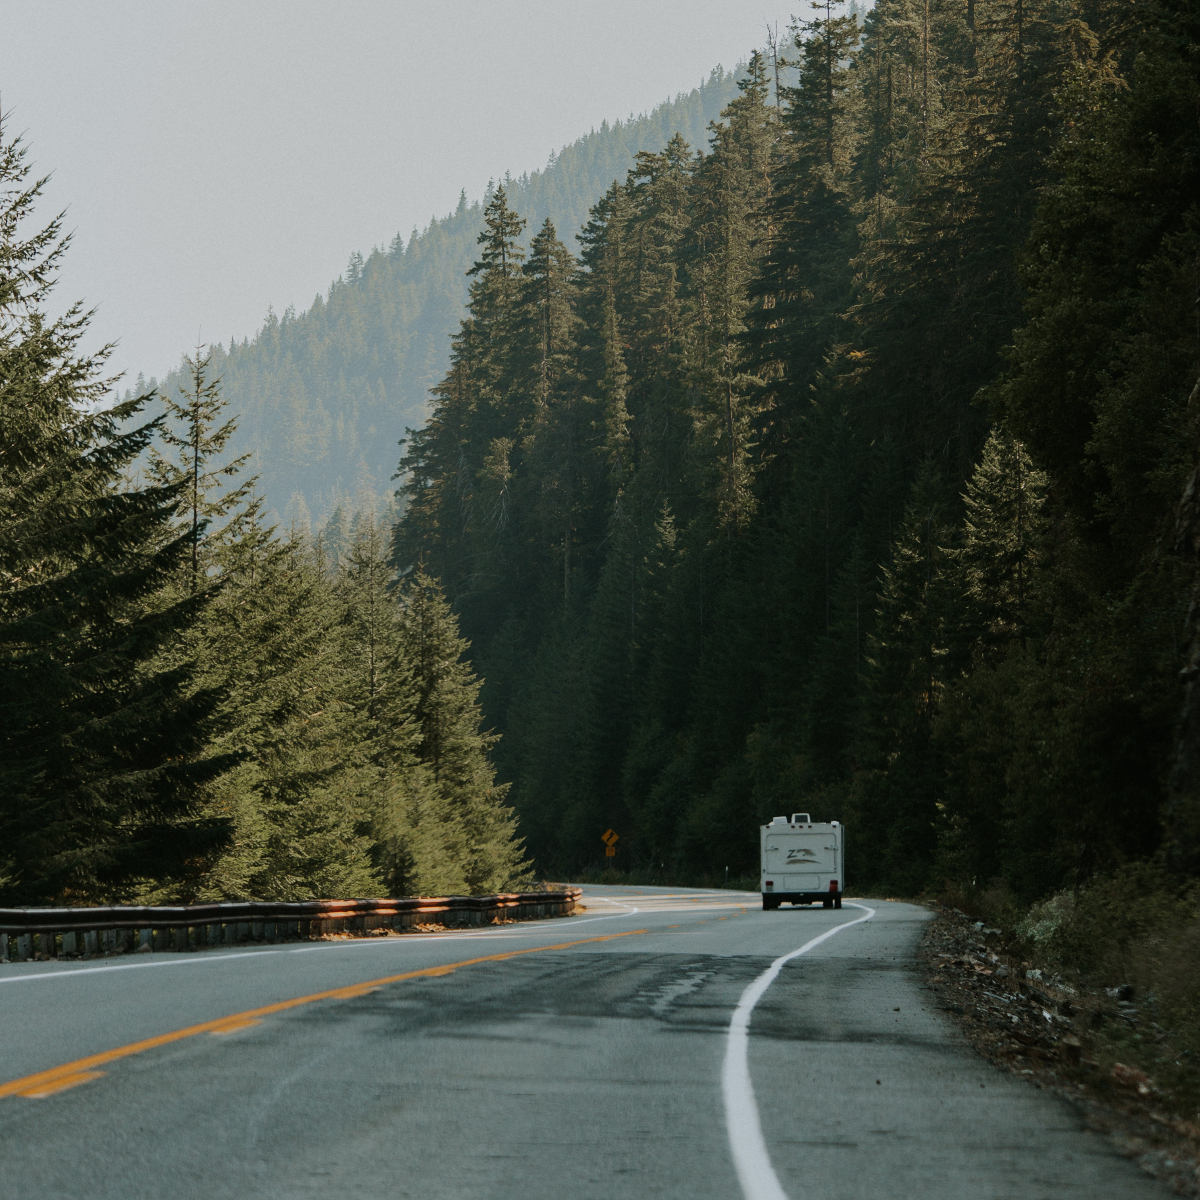 The Yellowhead highway traveling a mountain road